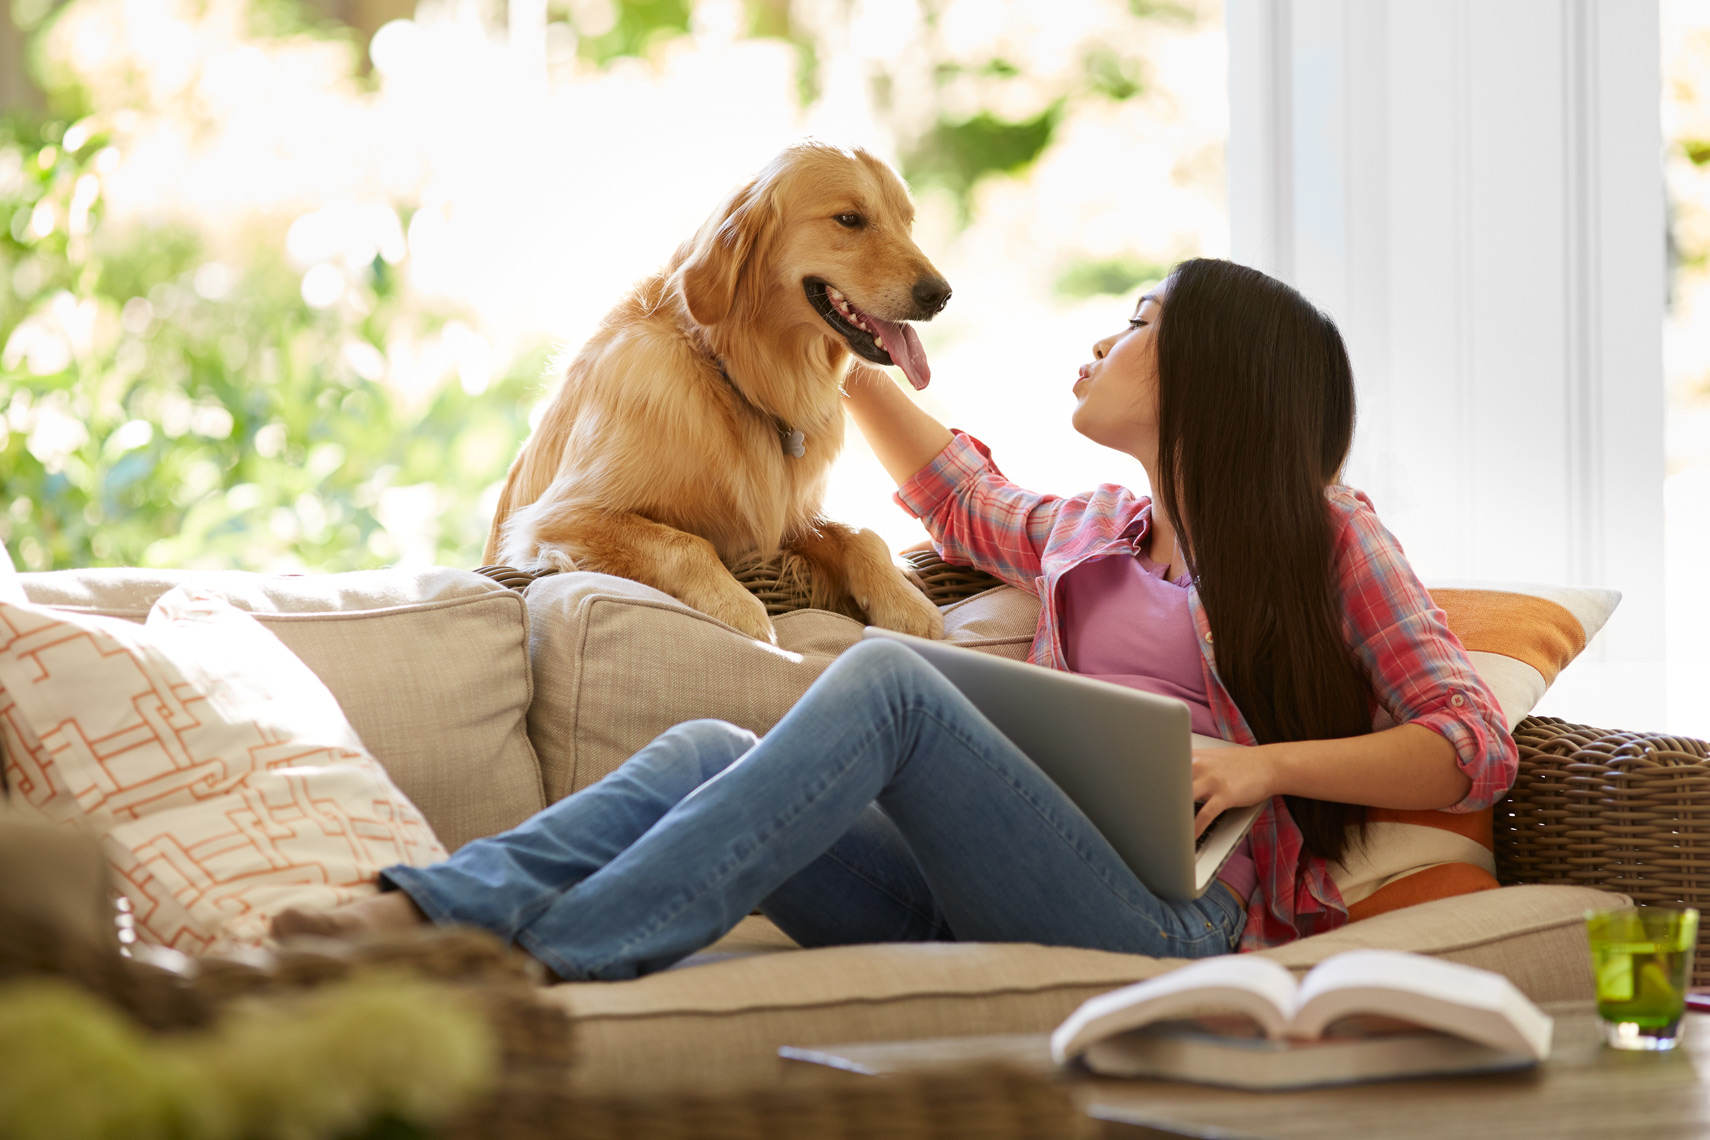 lifestyle photographer, advertising photographer, girls,living room, couch, sofa, dog, playing with dog